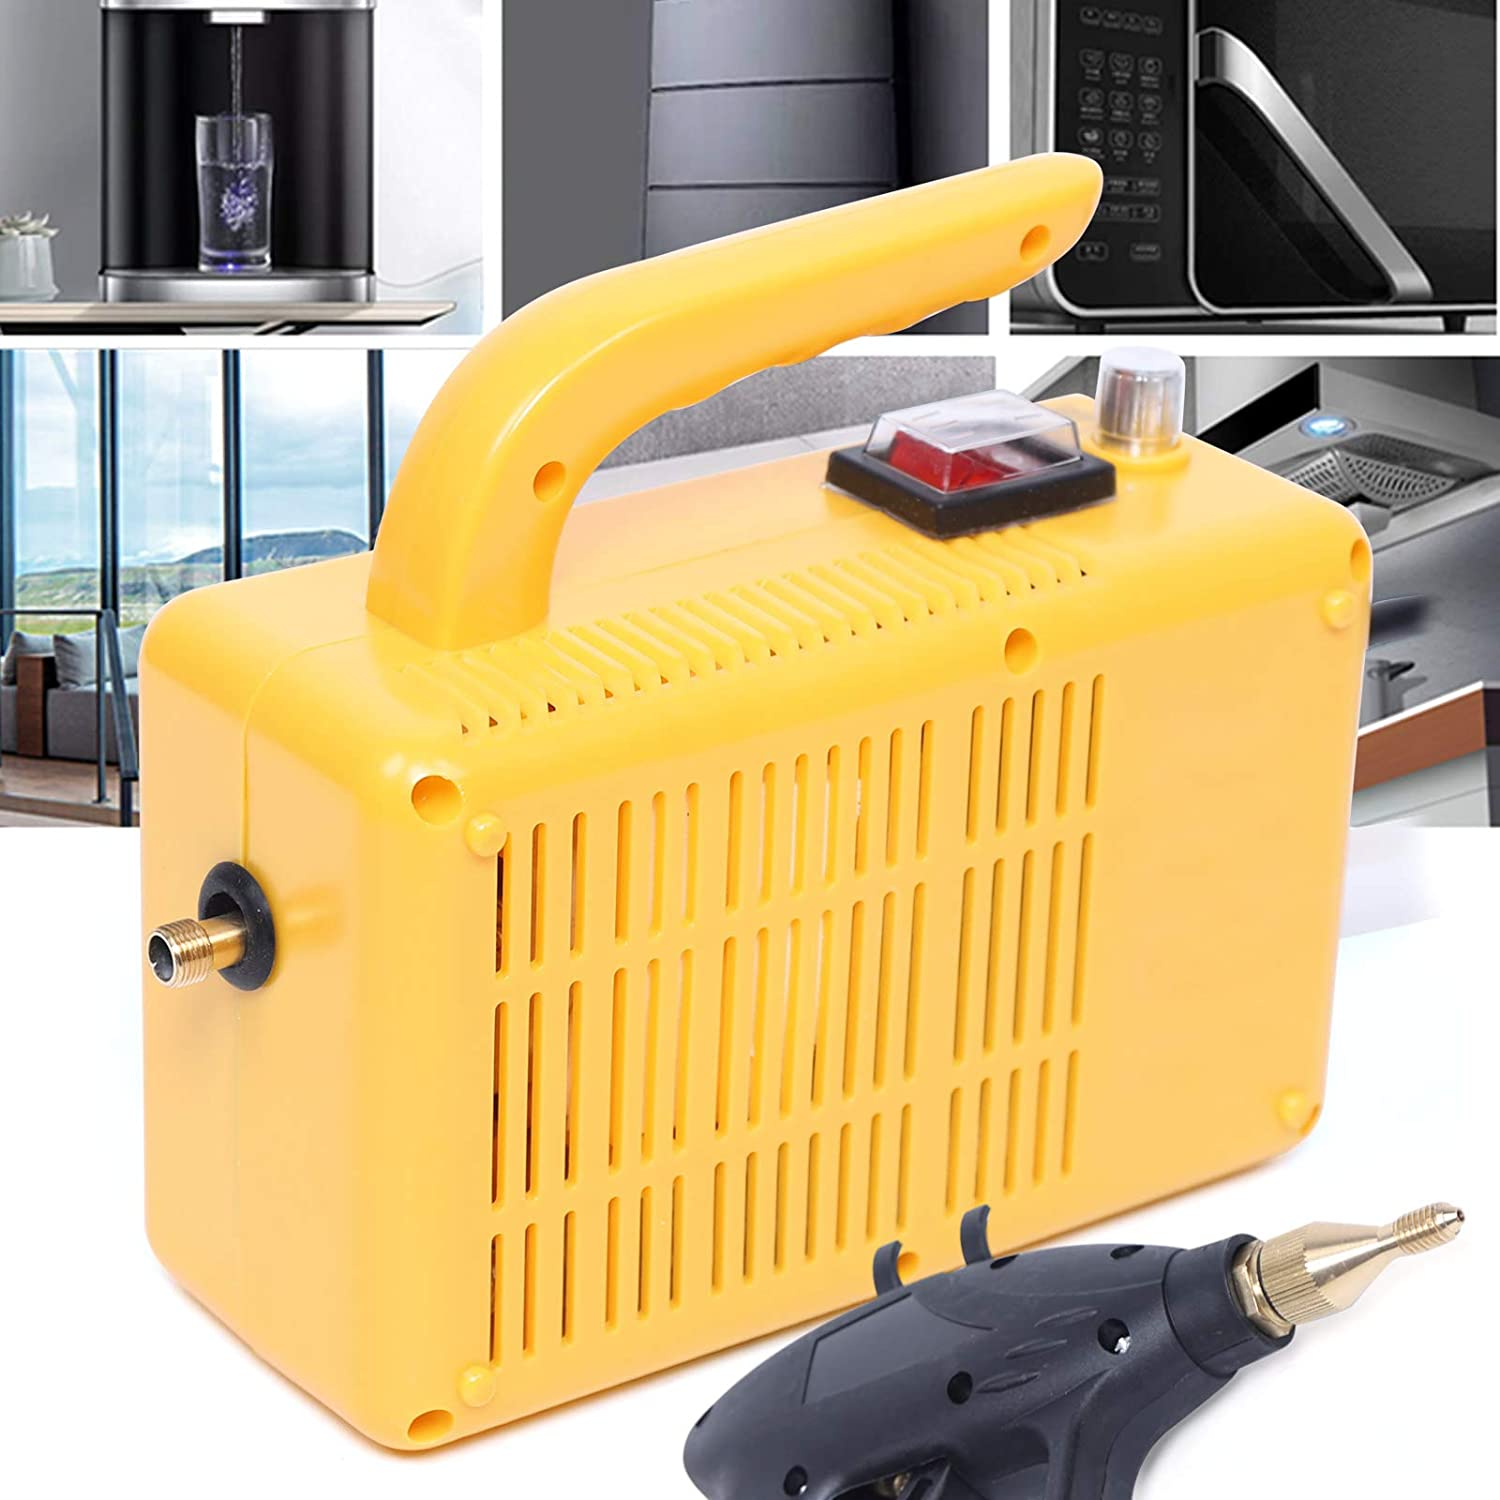 Gdrasuya10 1600W High Pressure All items free shipping 360°All-Round Easy-to-use Cleaner Steam C